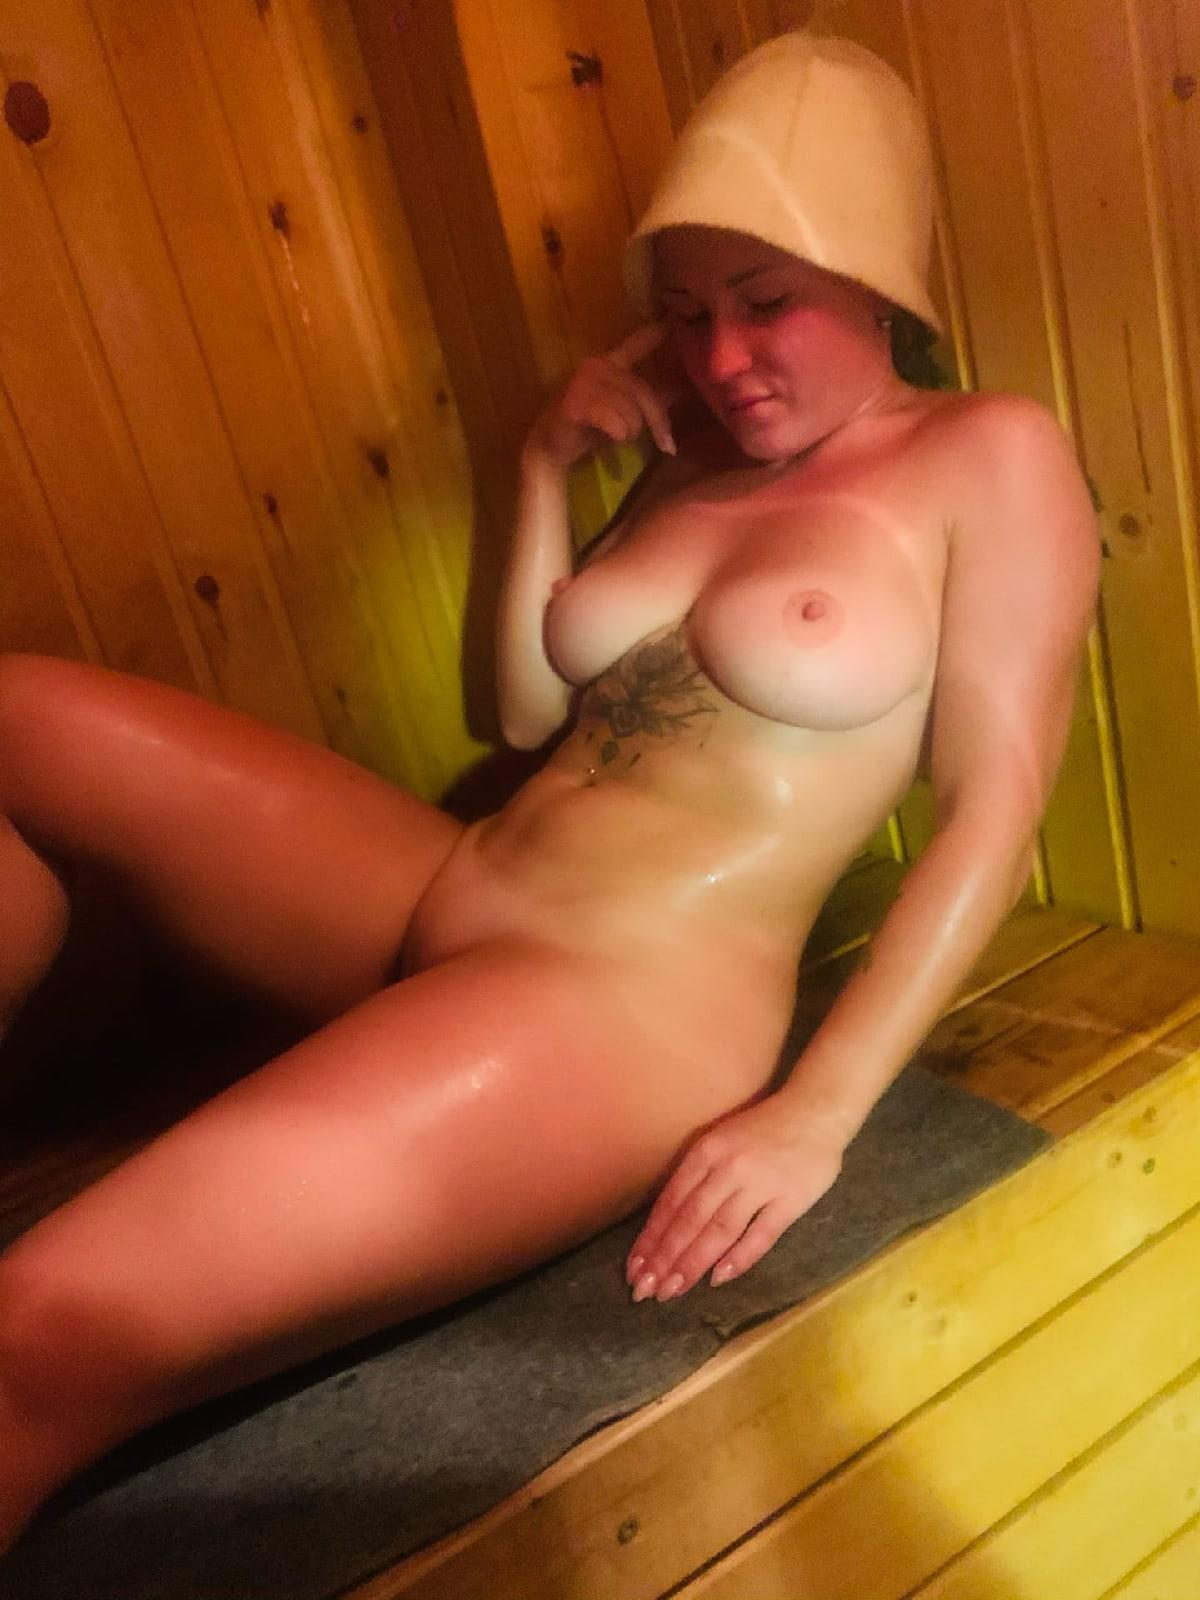 Picture with tags: Naked, Interesting, Porn, Amateur, Girl